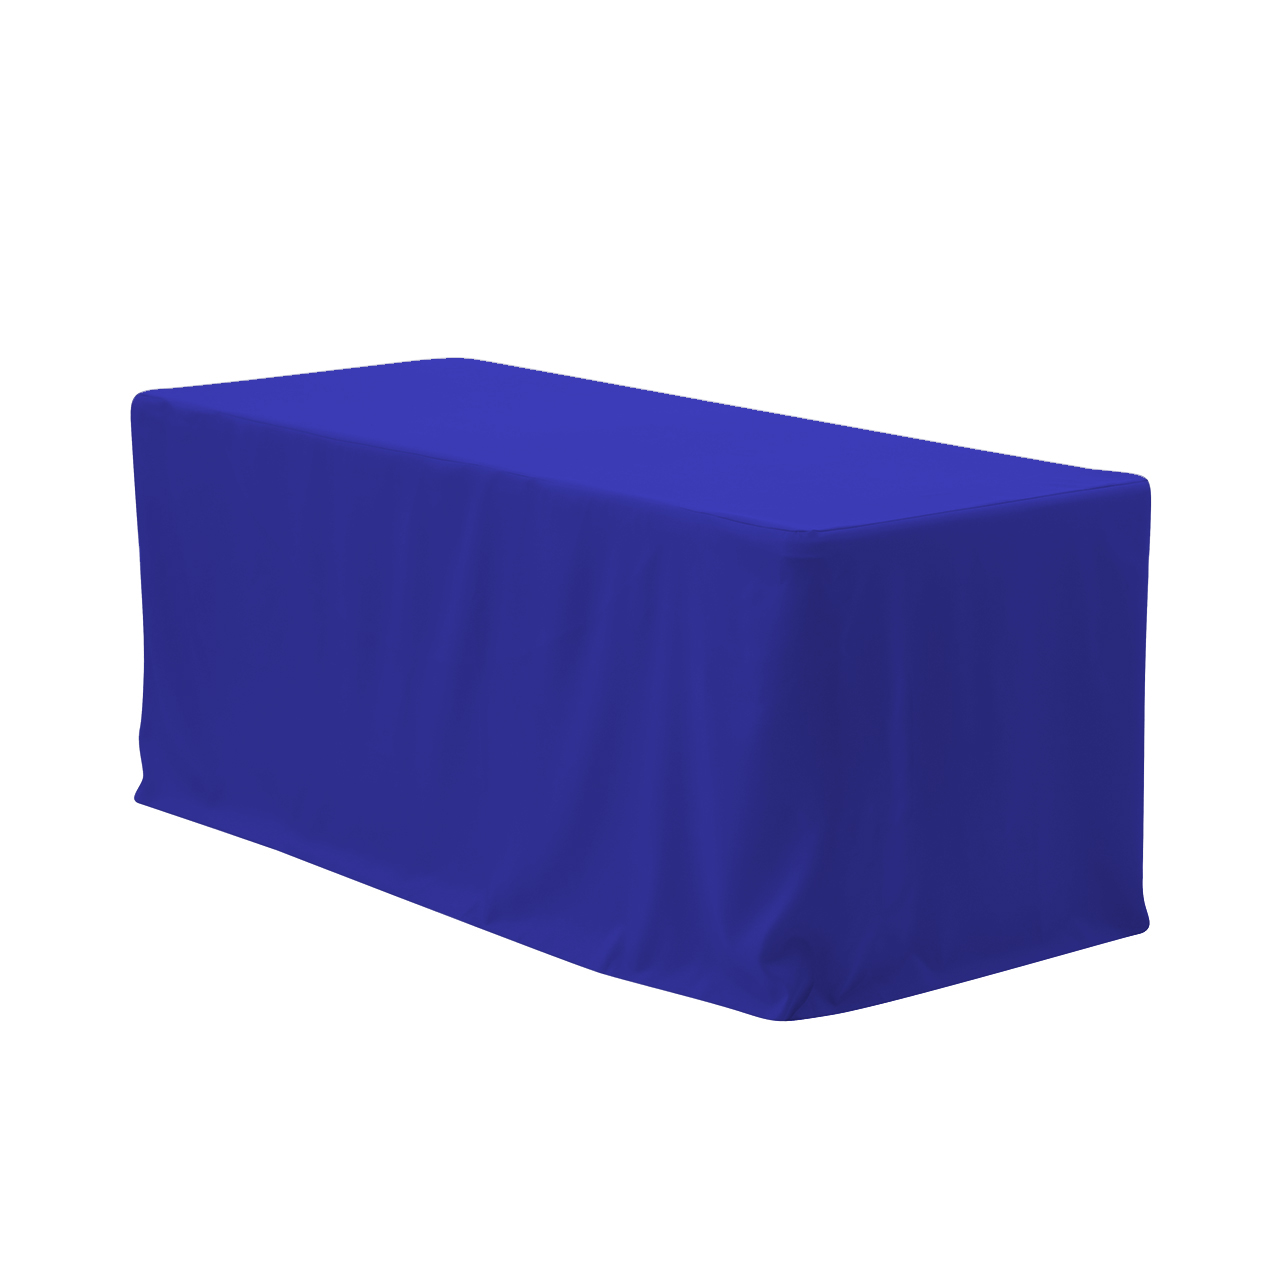 royal blue chair covers large cushions your 8 ft fitted polyester tablecloth rectangular for wedding party birthday patio etc